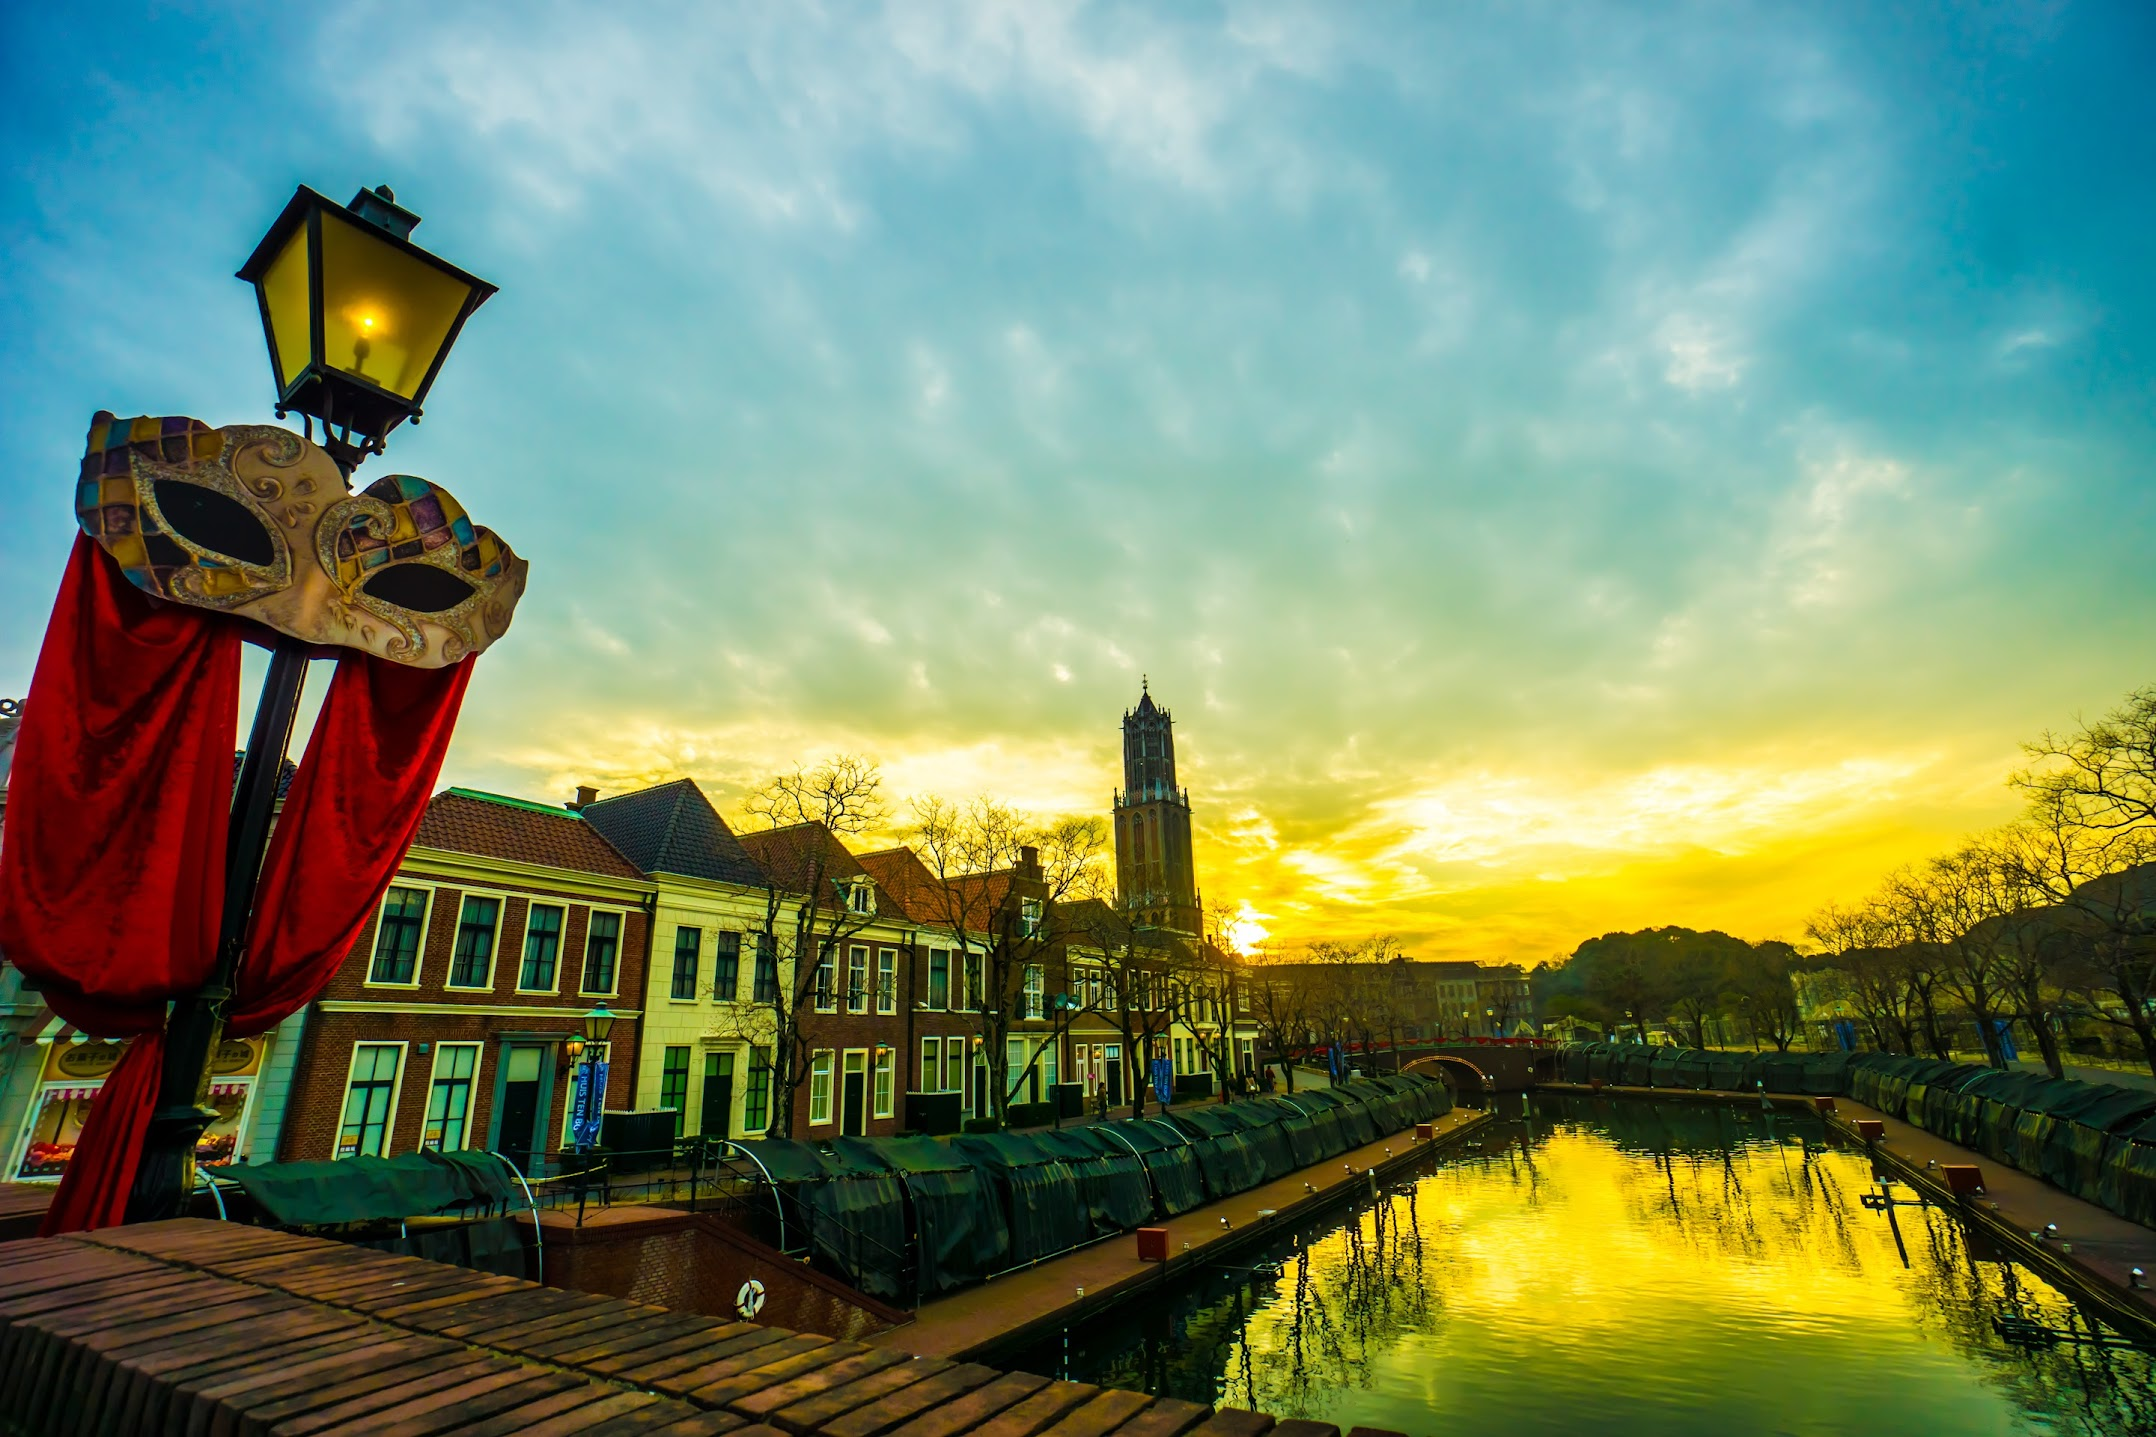 Huis Ten Bosch sundown